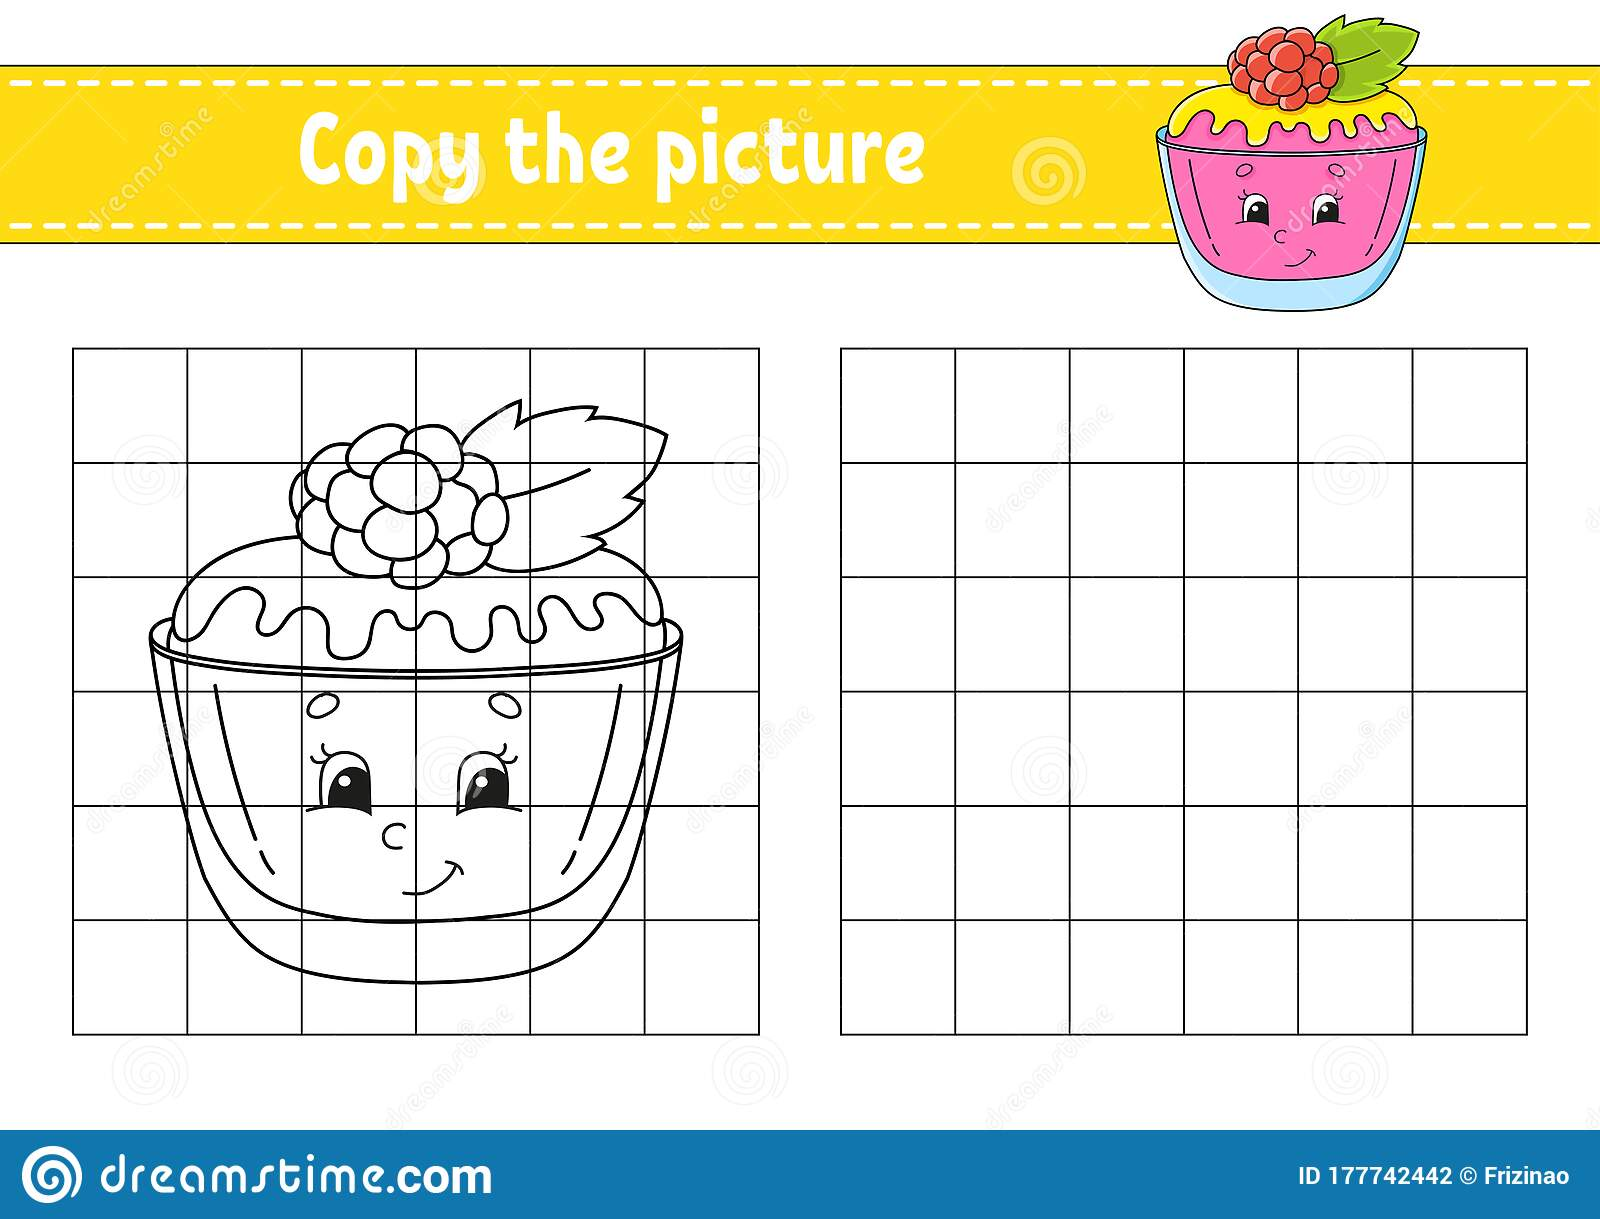 Copy The Picture Sweet Cake Coloring Book Pages For Kids